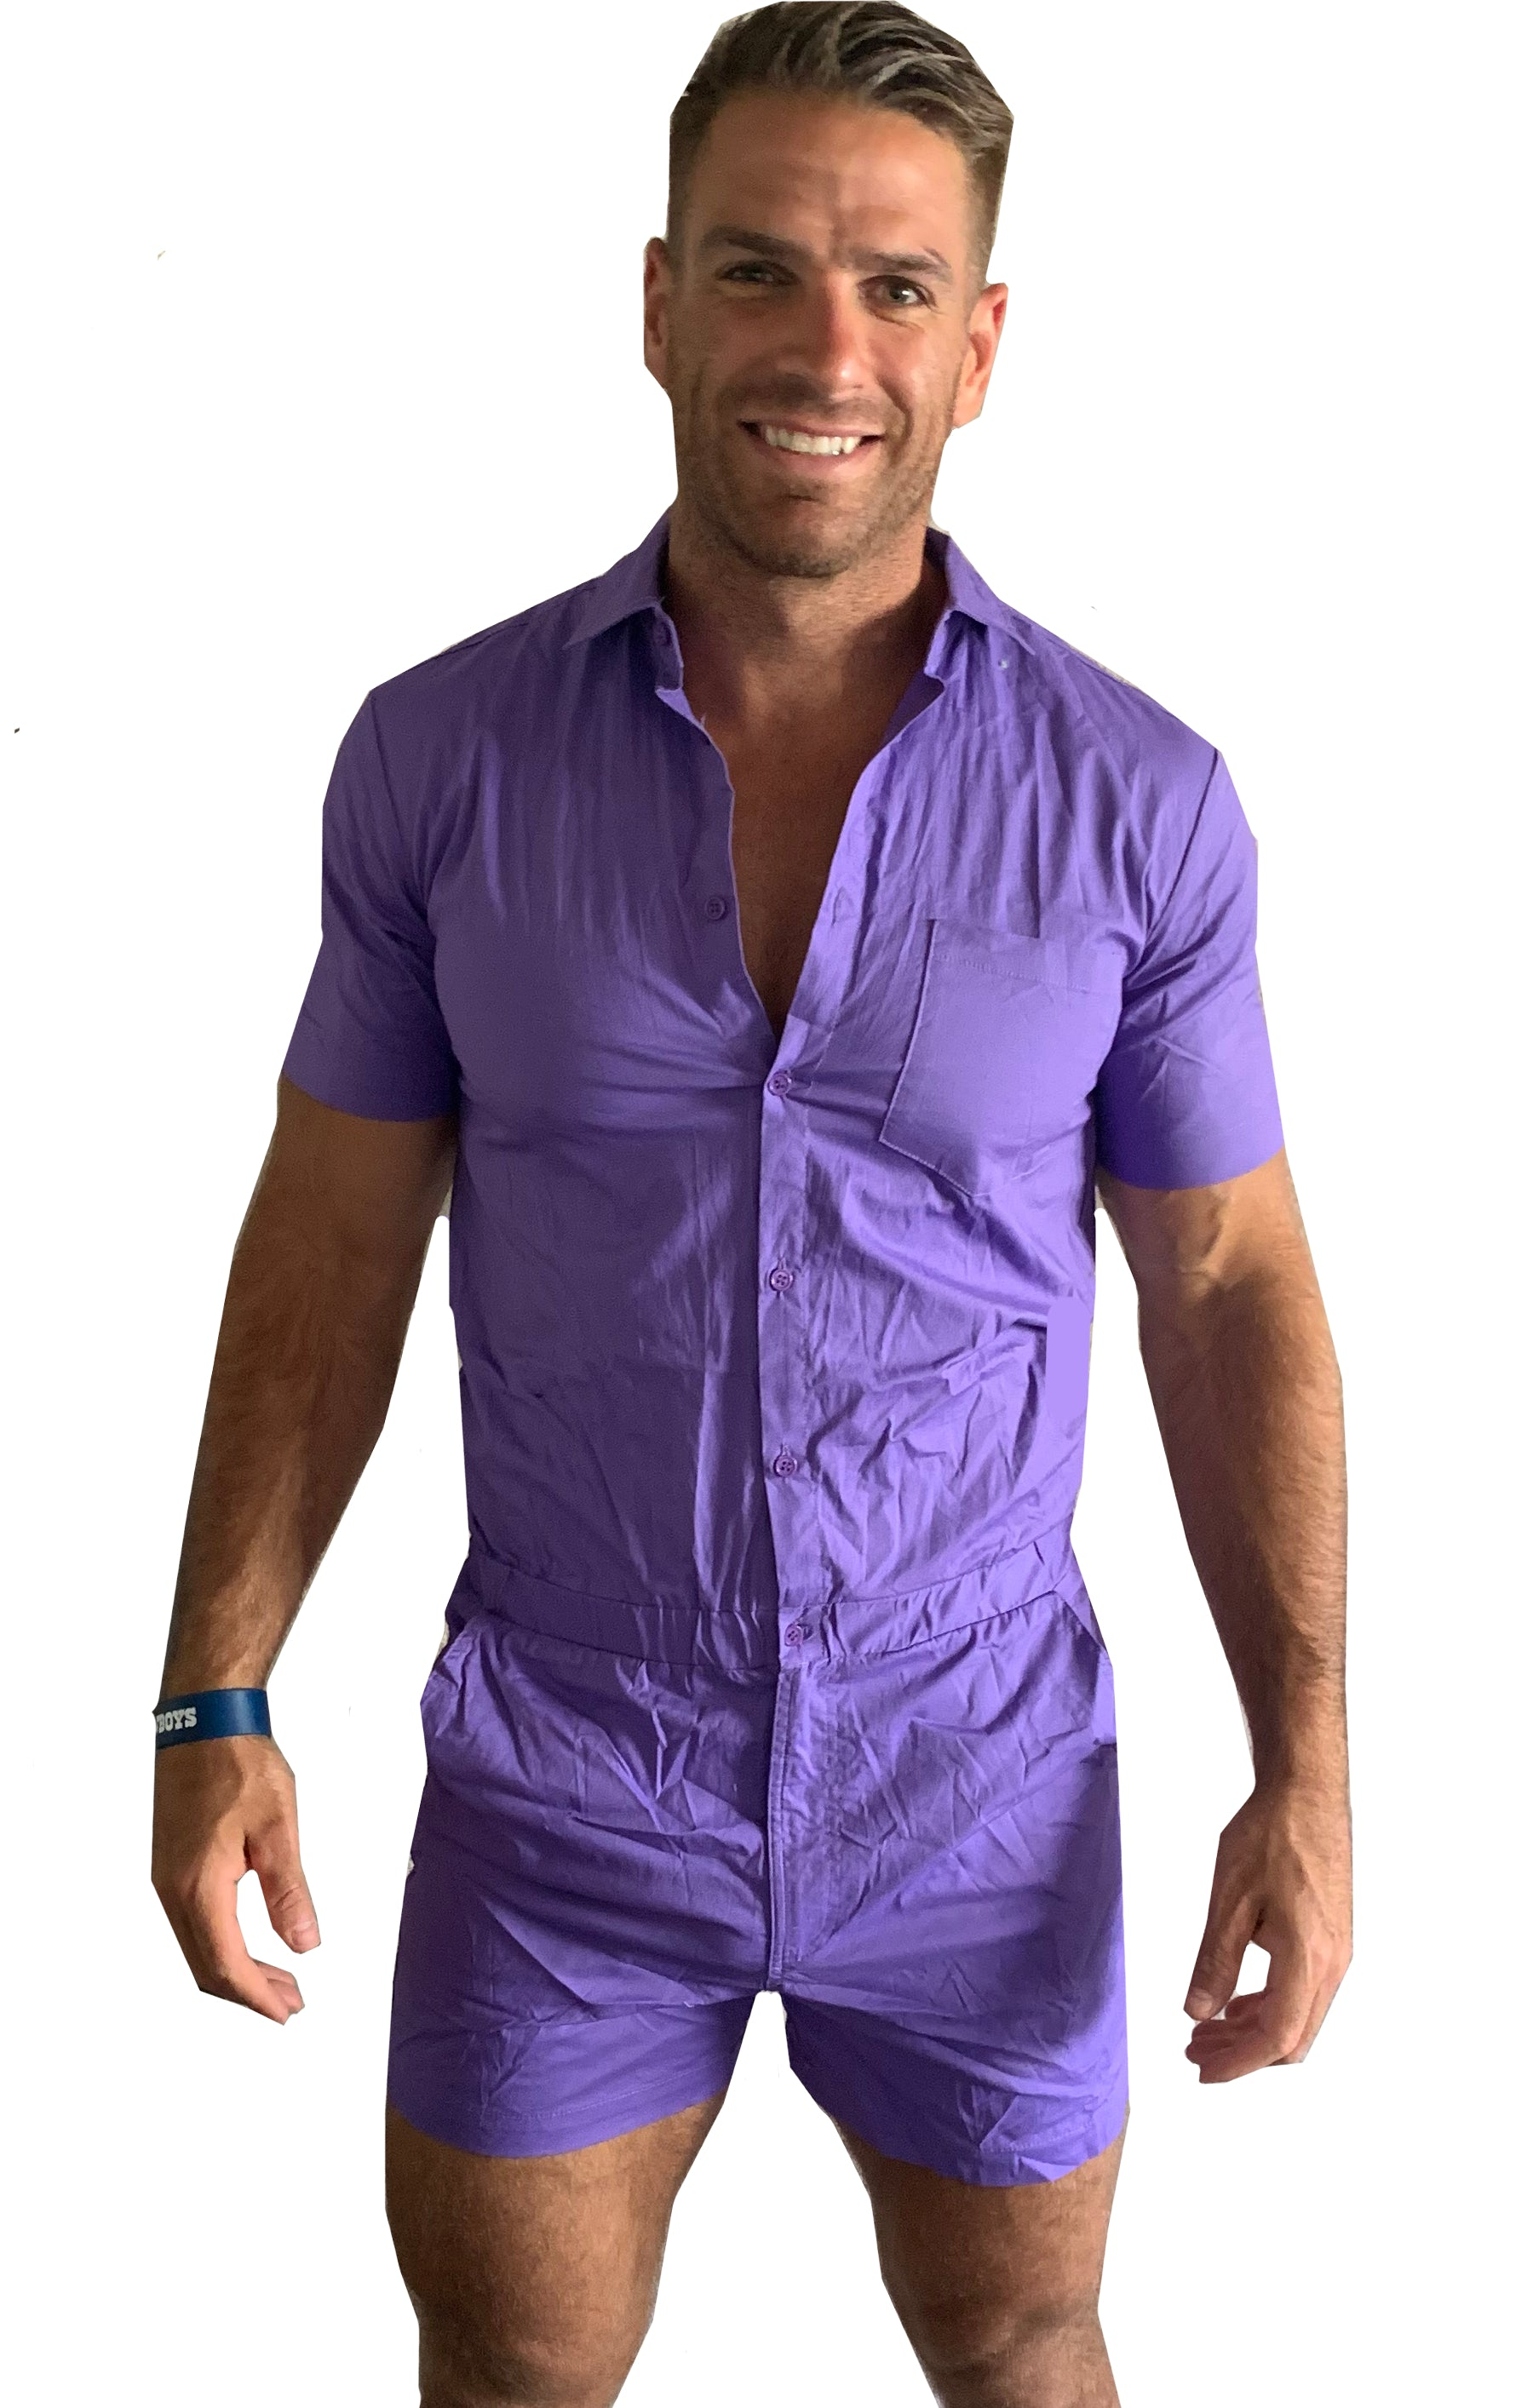 Male Romper - Light Purple